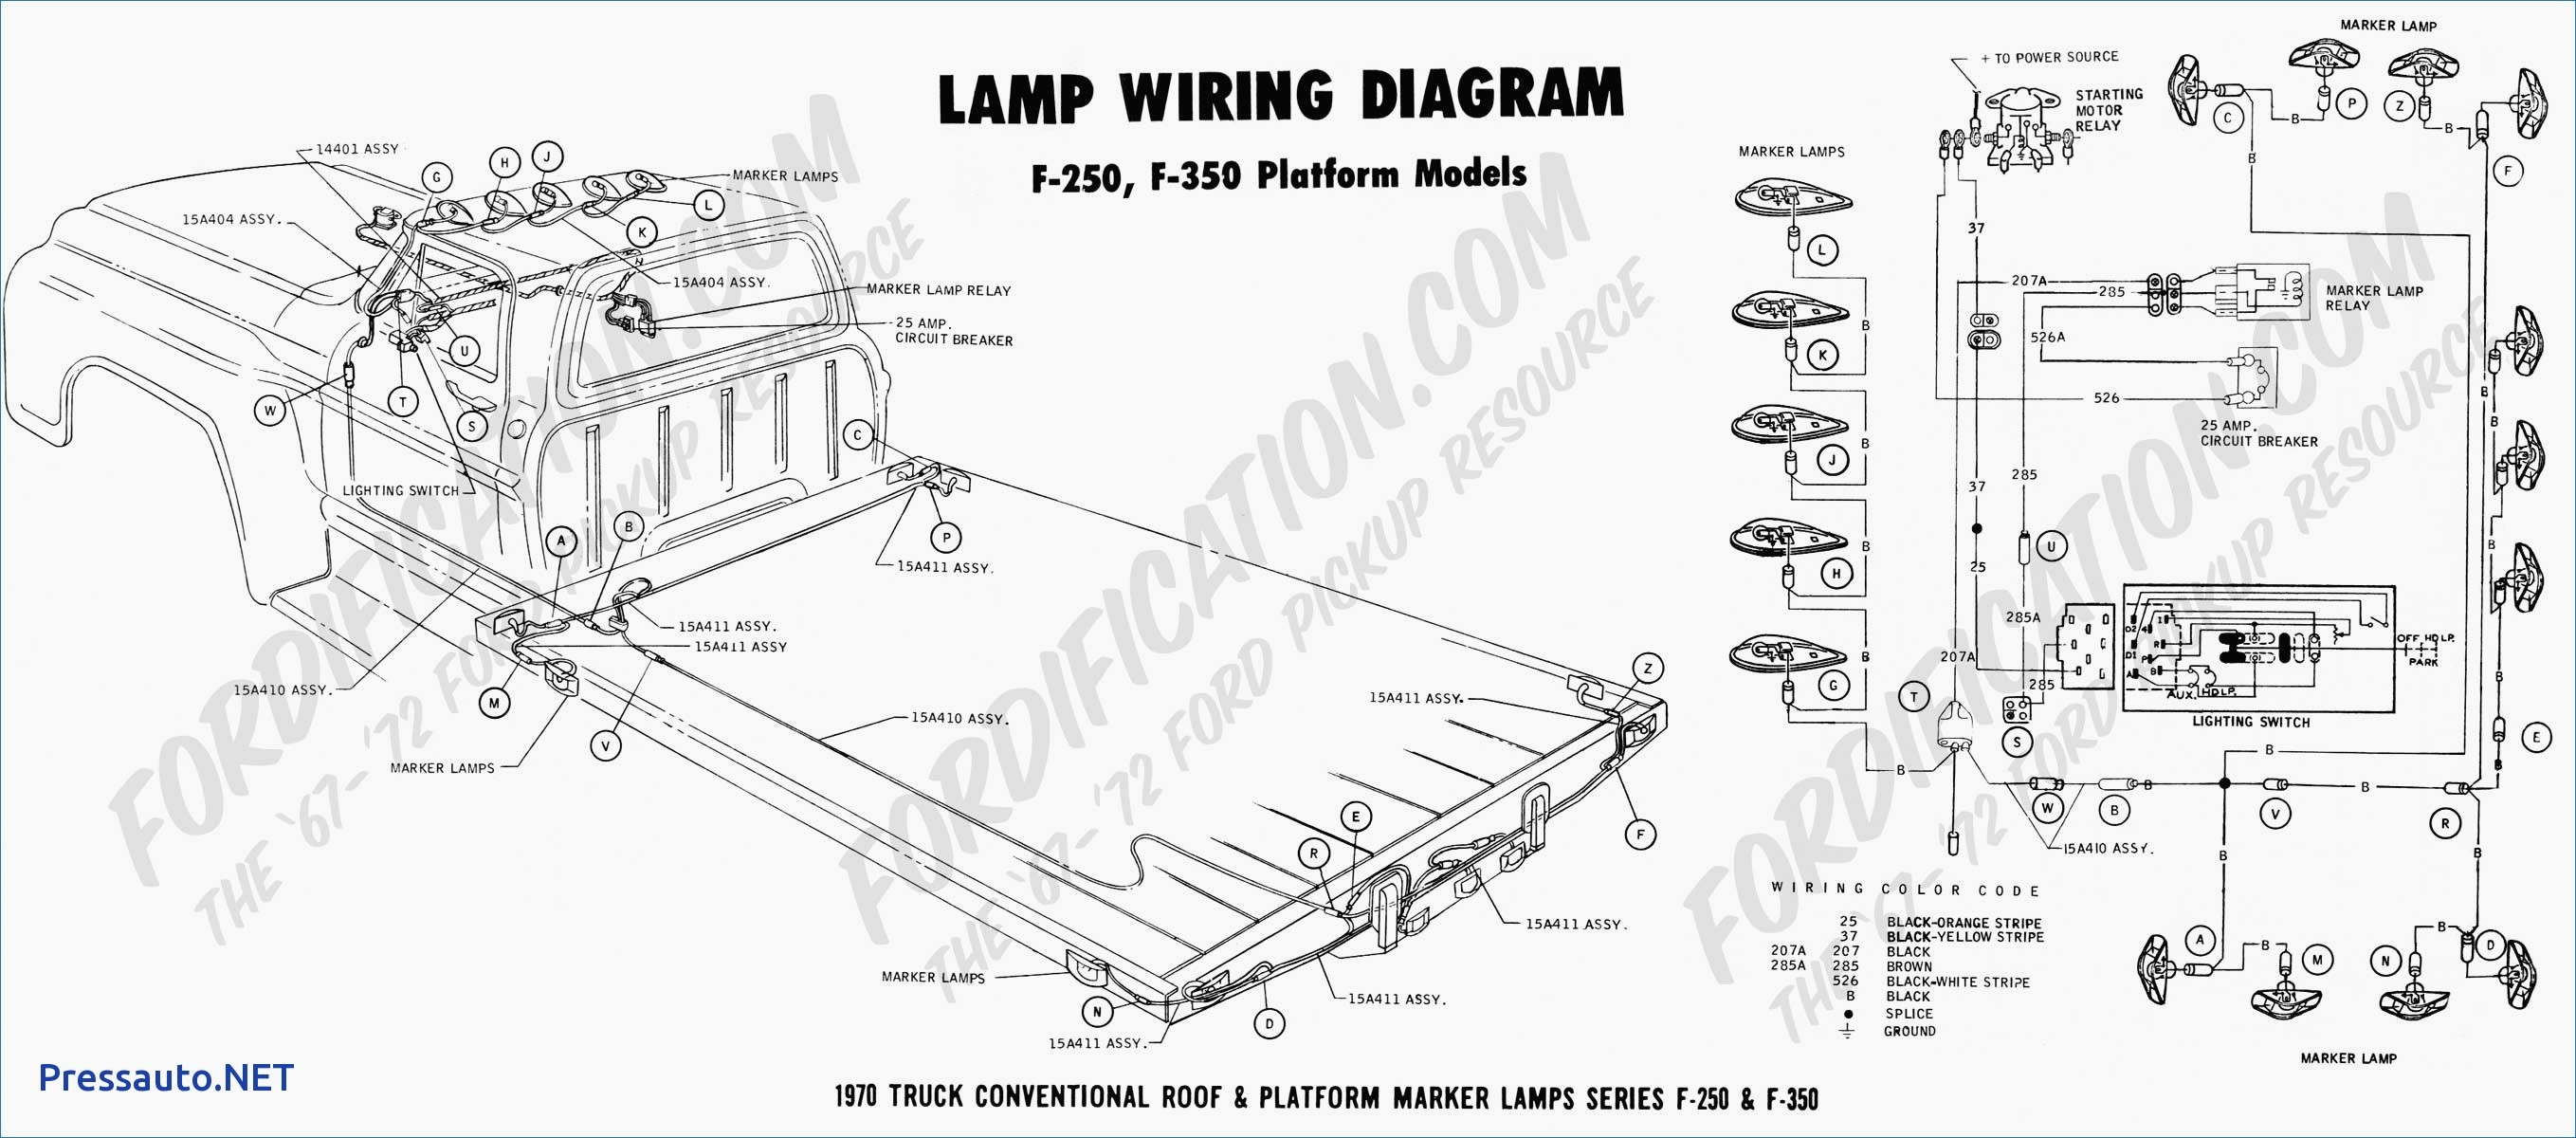 2004 Saturn Ion Window Wiring Diagram Worksheet And Fuse Box Engine Rh Detoxicrecenze Com